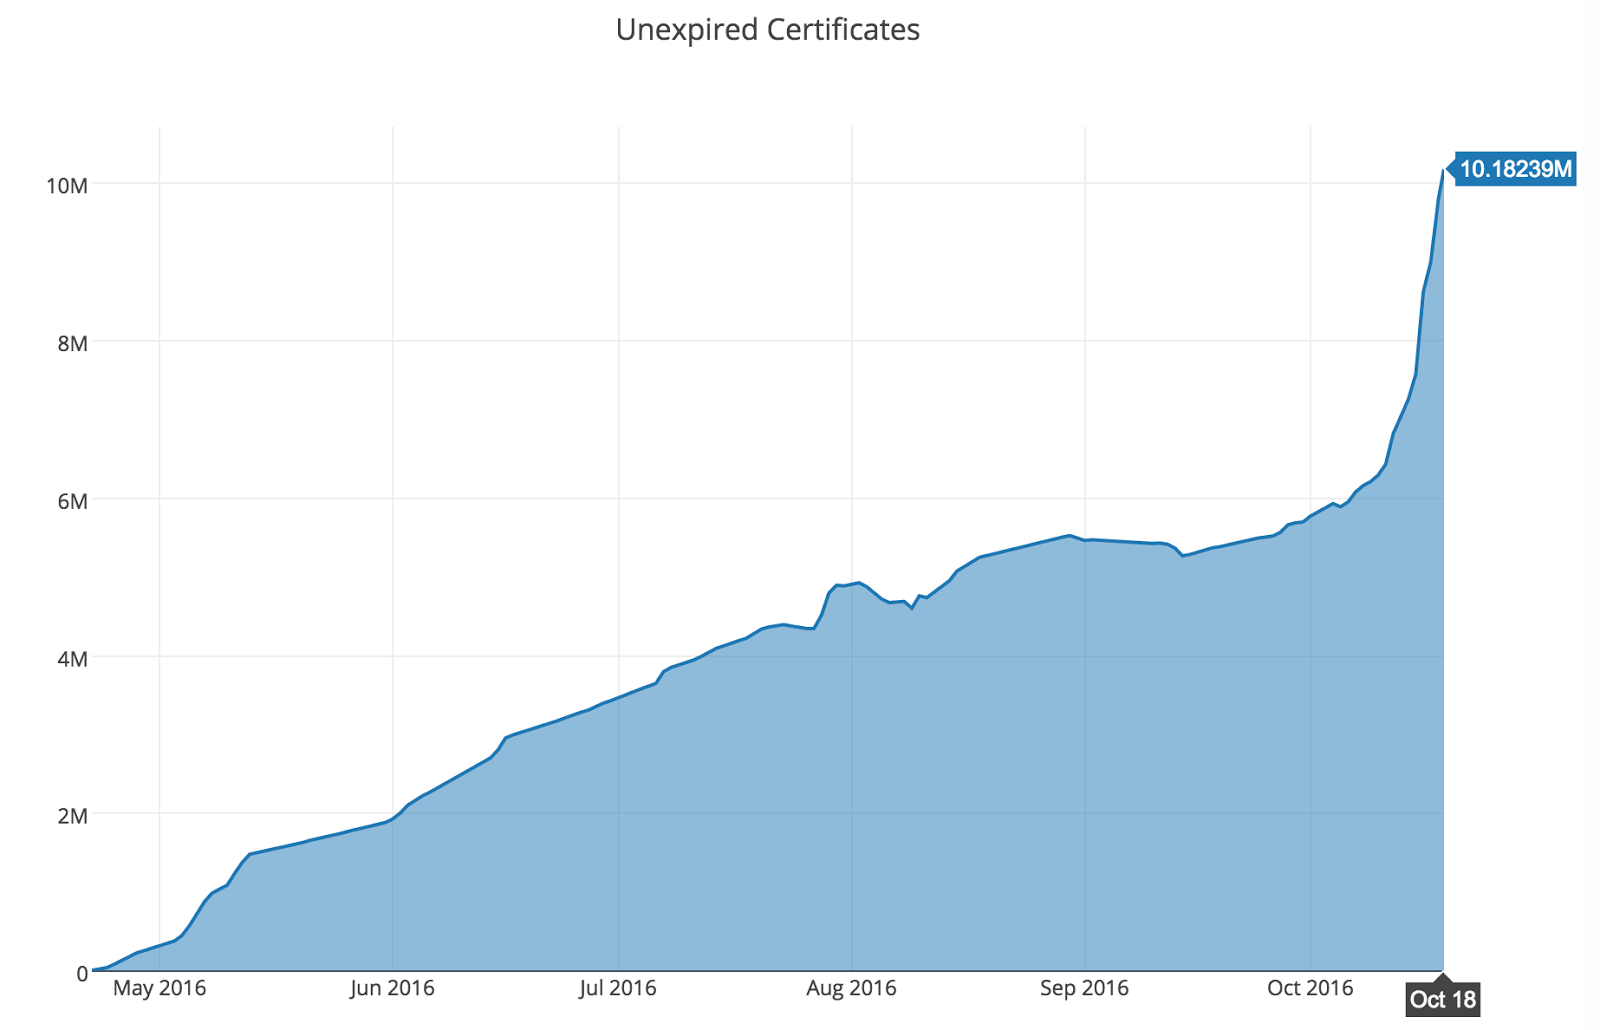 Let's Encrypt's unexpired certificate growth